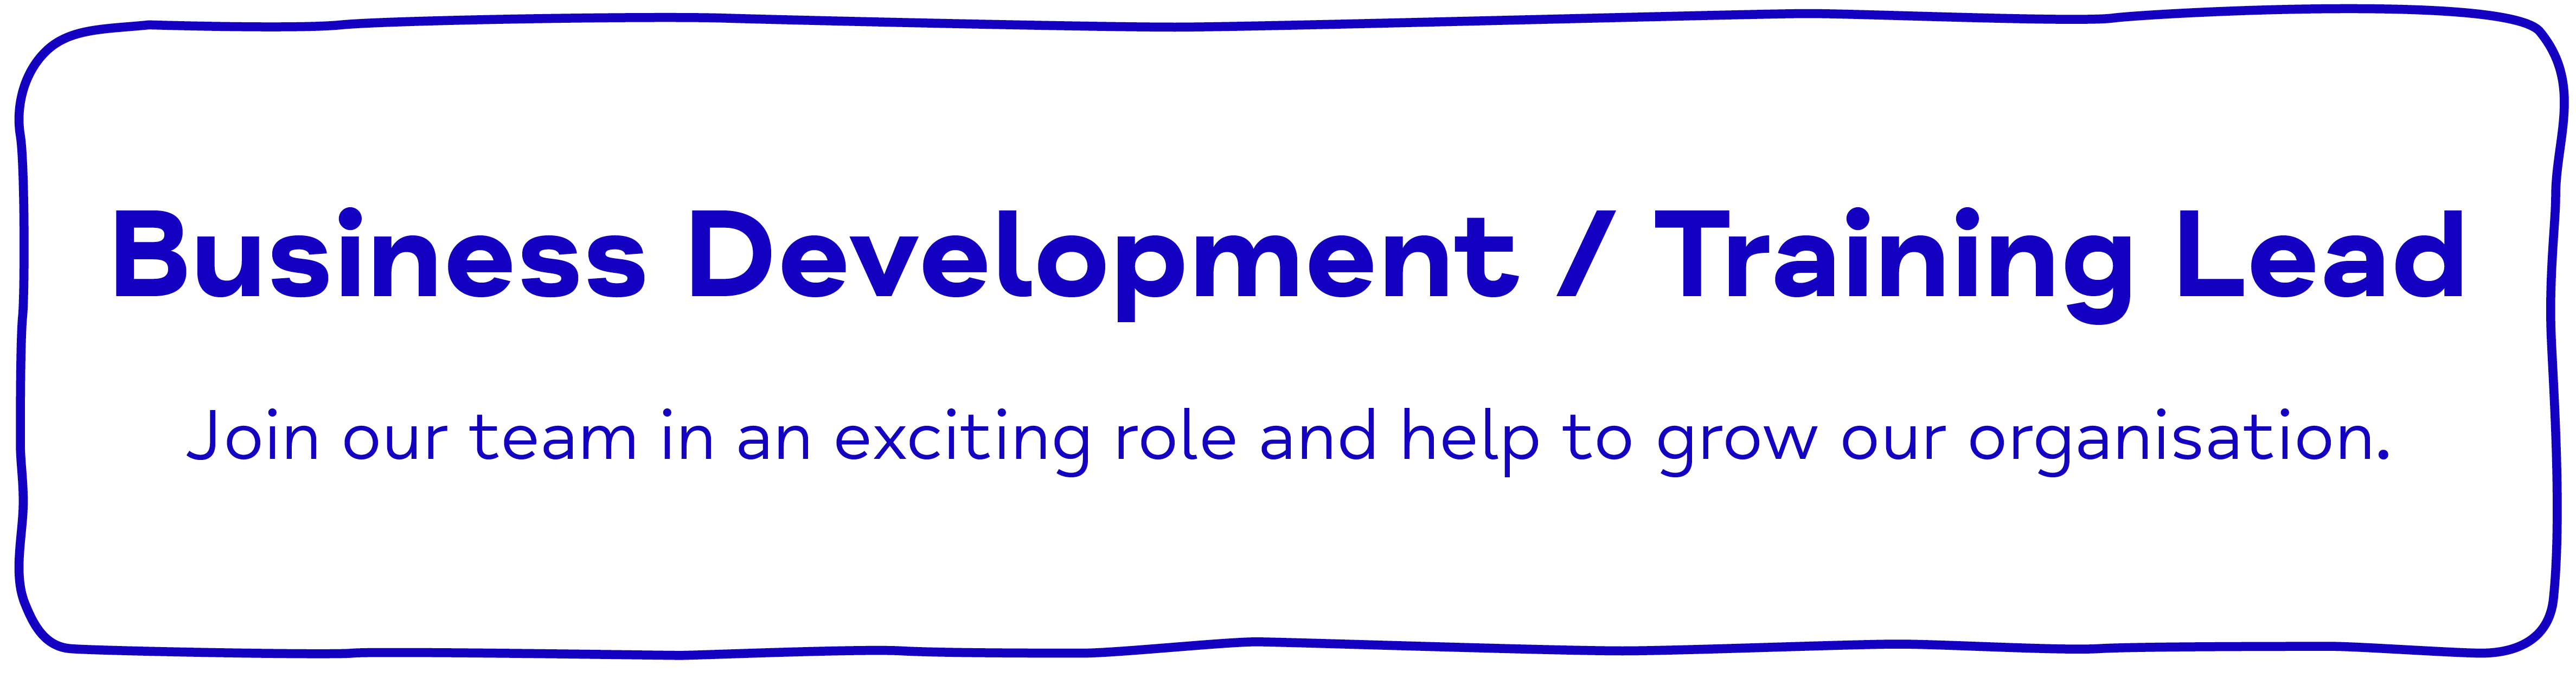 Business Development / Training Lead Join our team in an exciting role and help to grow our organisation.